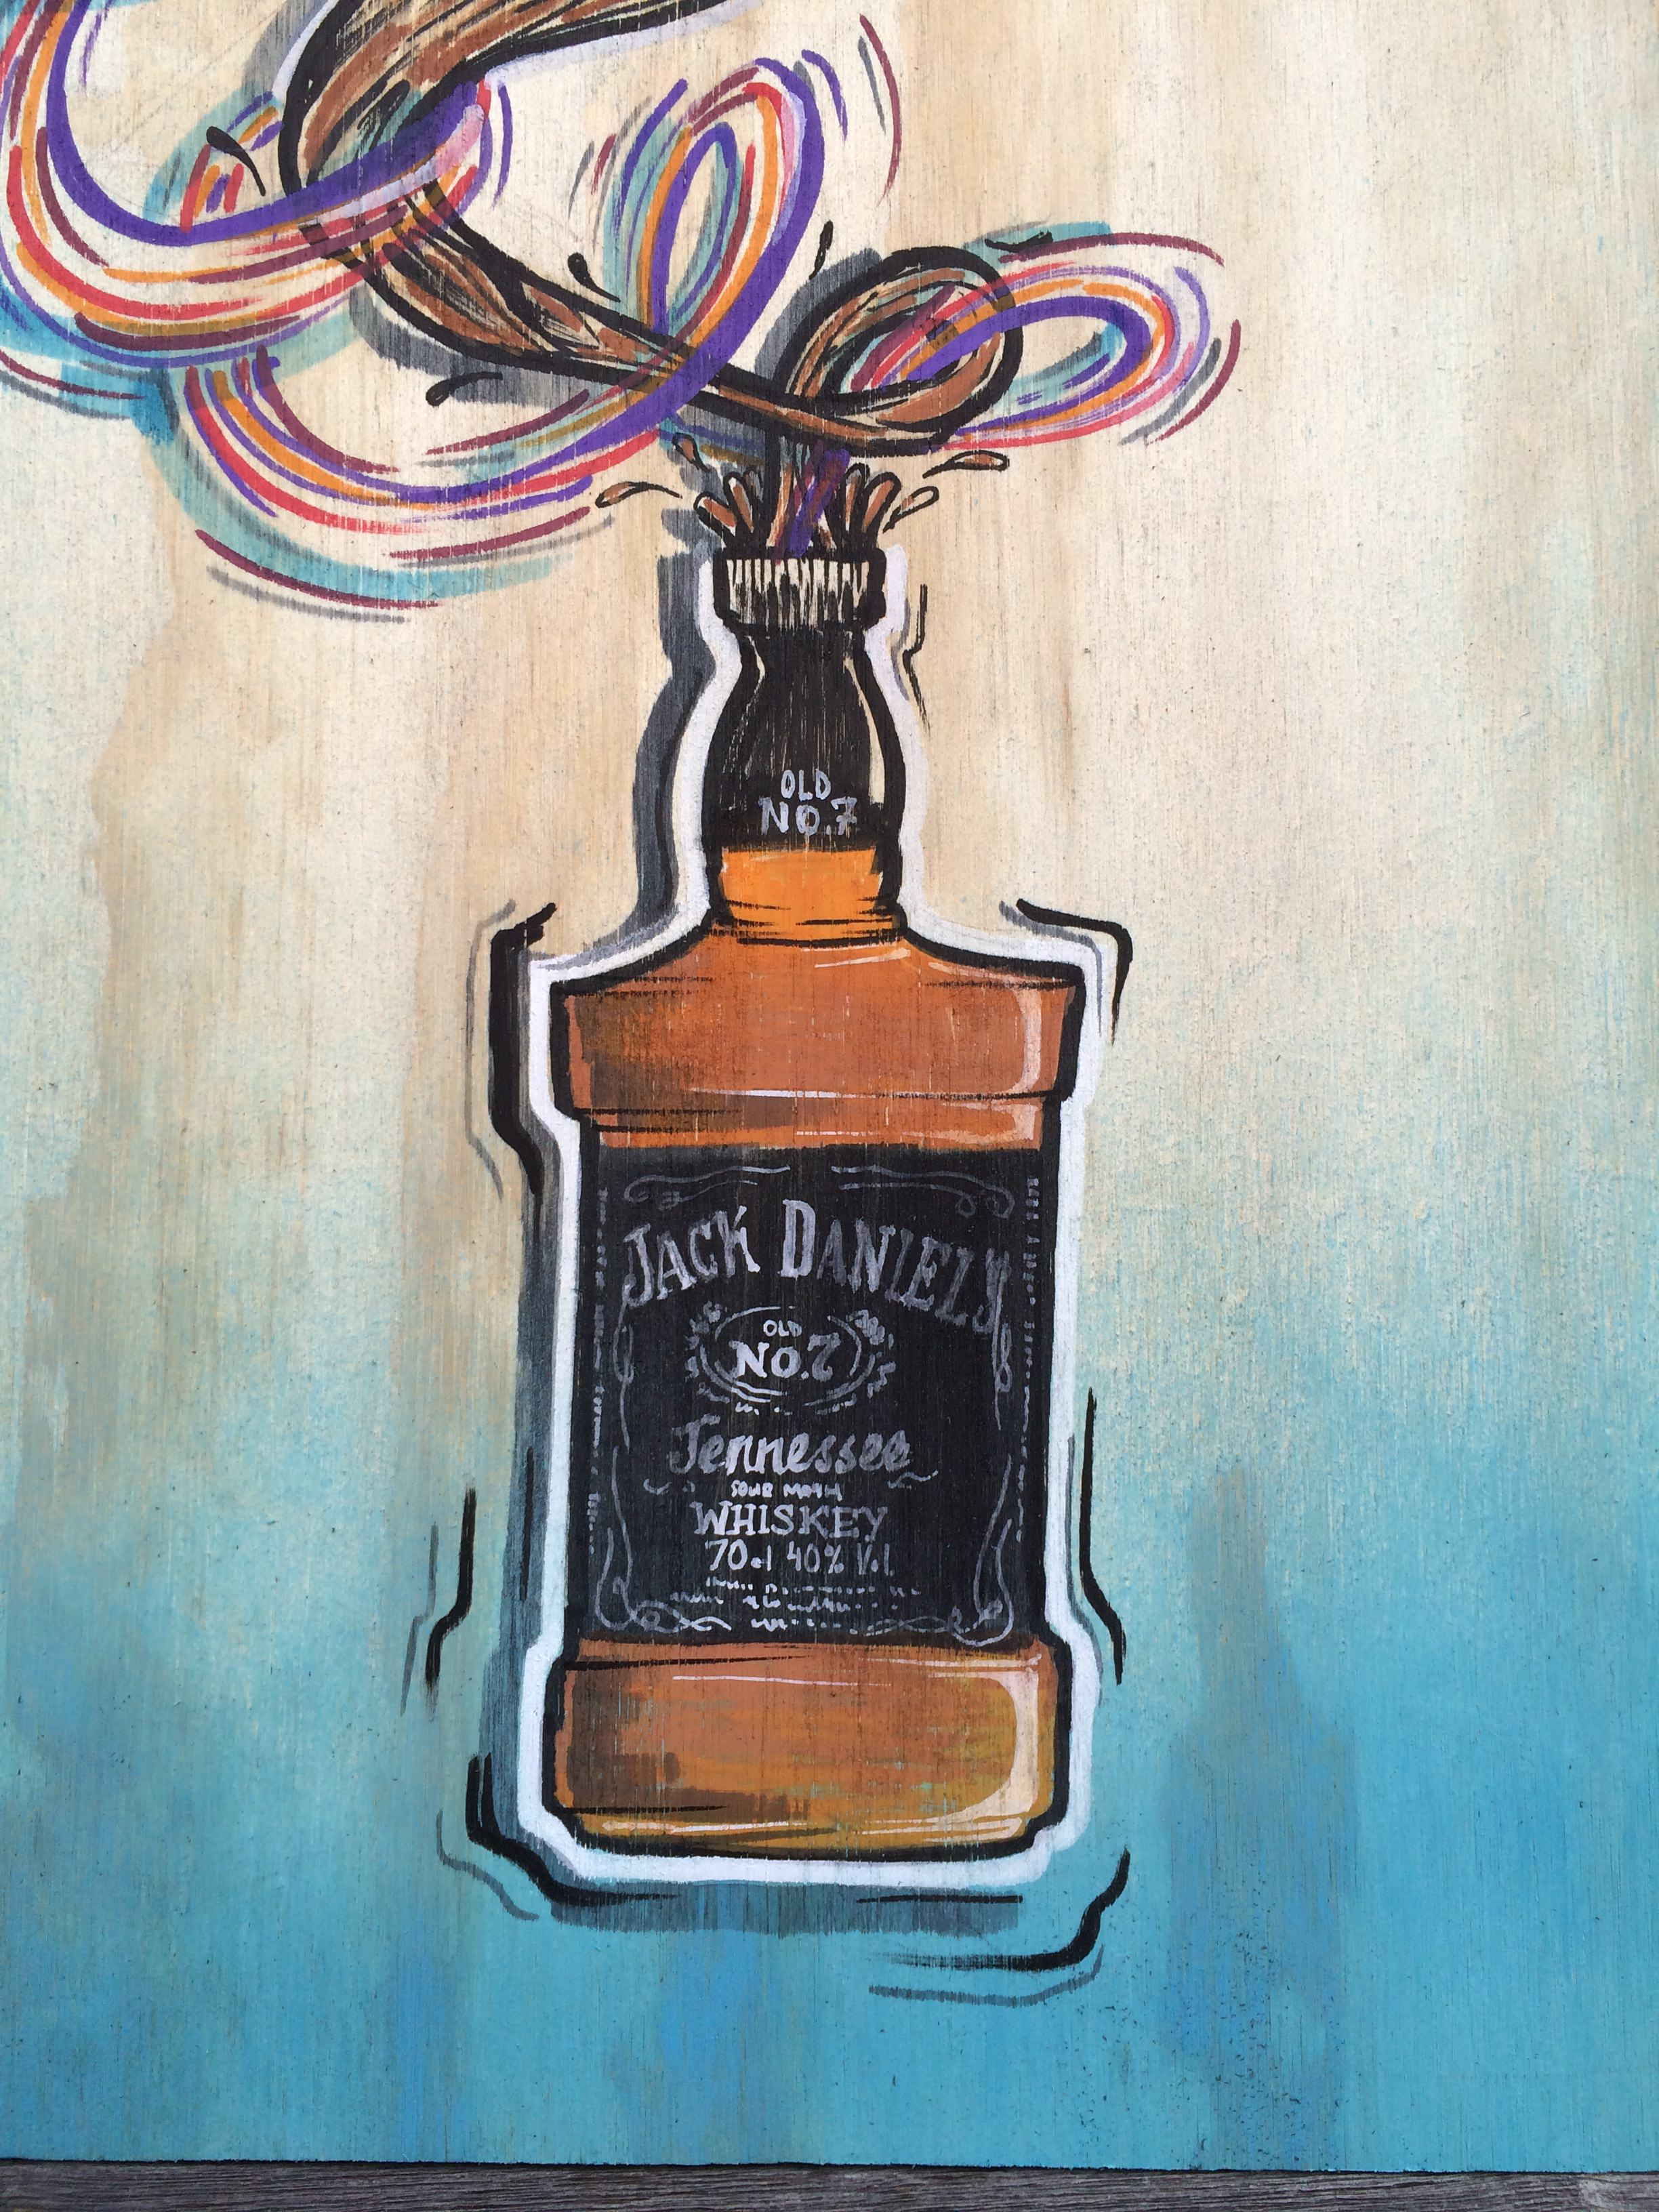 Jack-Daniel's-birthday-bar-that-jack-built-sam-shennan-samshennan-whisky-painting-artwork-geanie-sydney-painter-artist-muralist-1-closeup-of-bottle